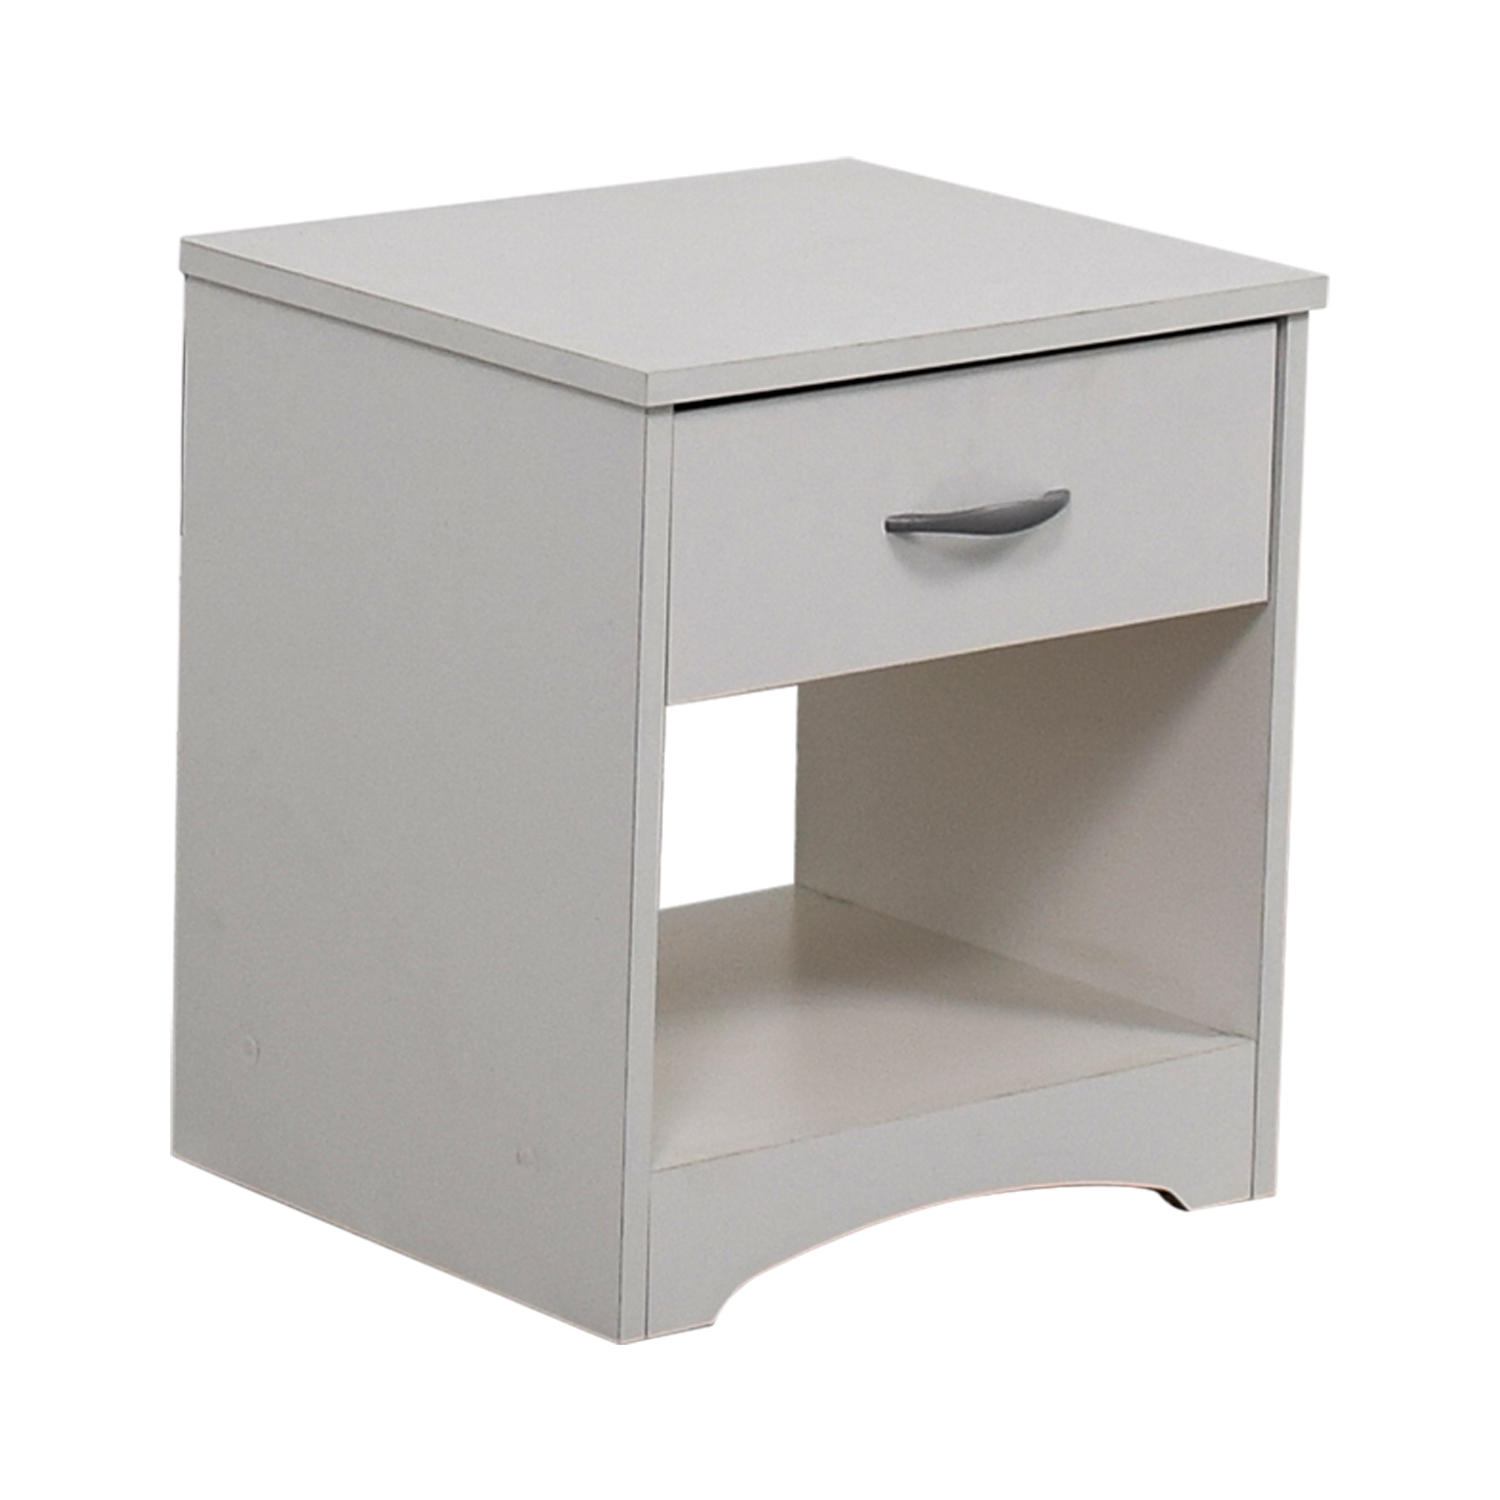 Excellent 55 Off Wayfair Wayfair Small White Nightstand Tables Bralicious Painted Fabric Chair Ideas Braliciousco